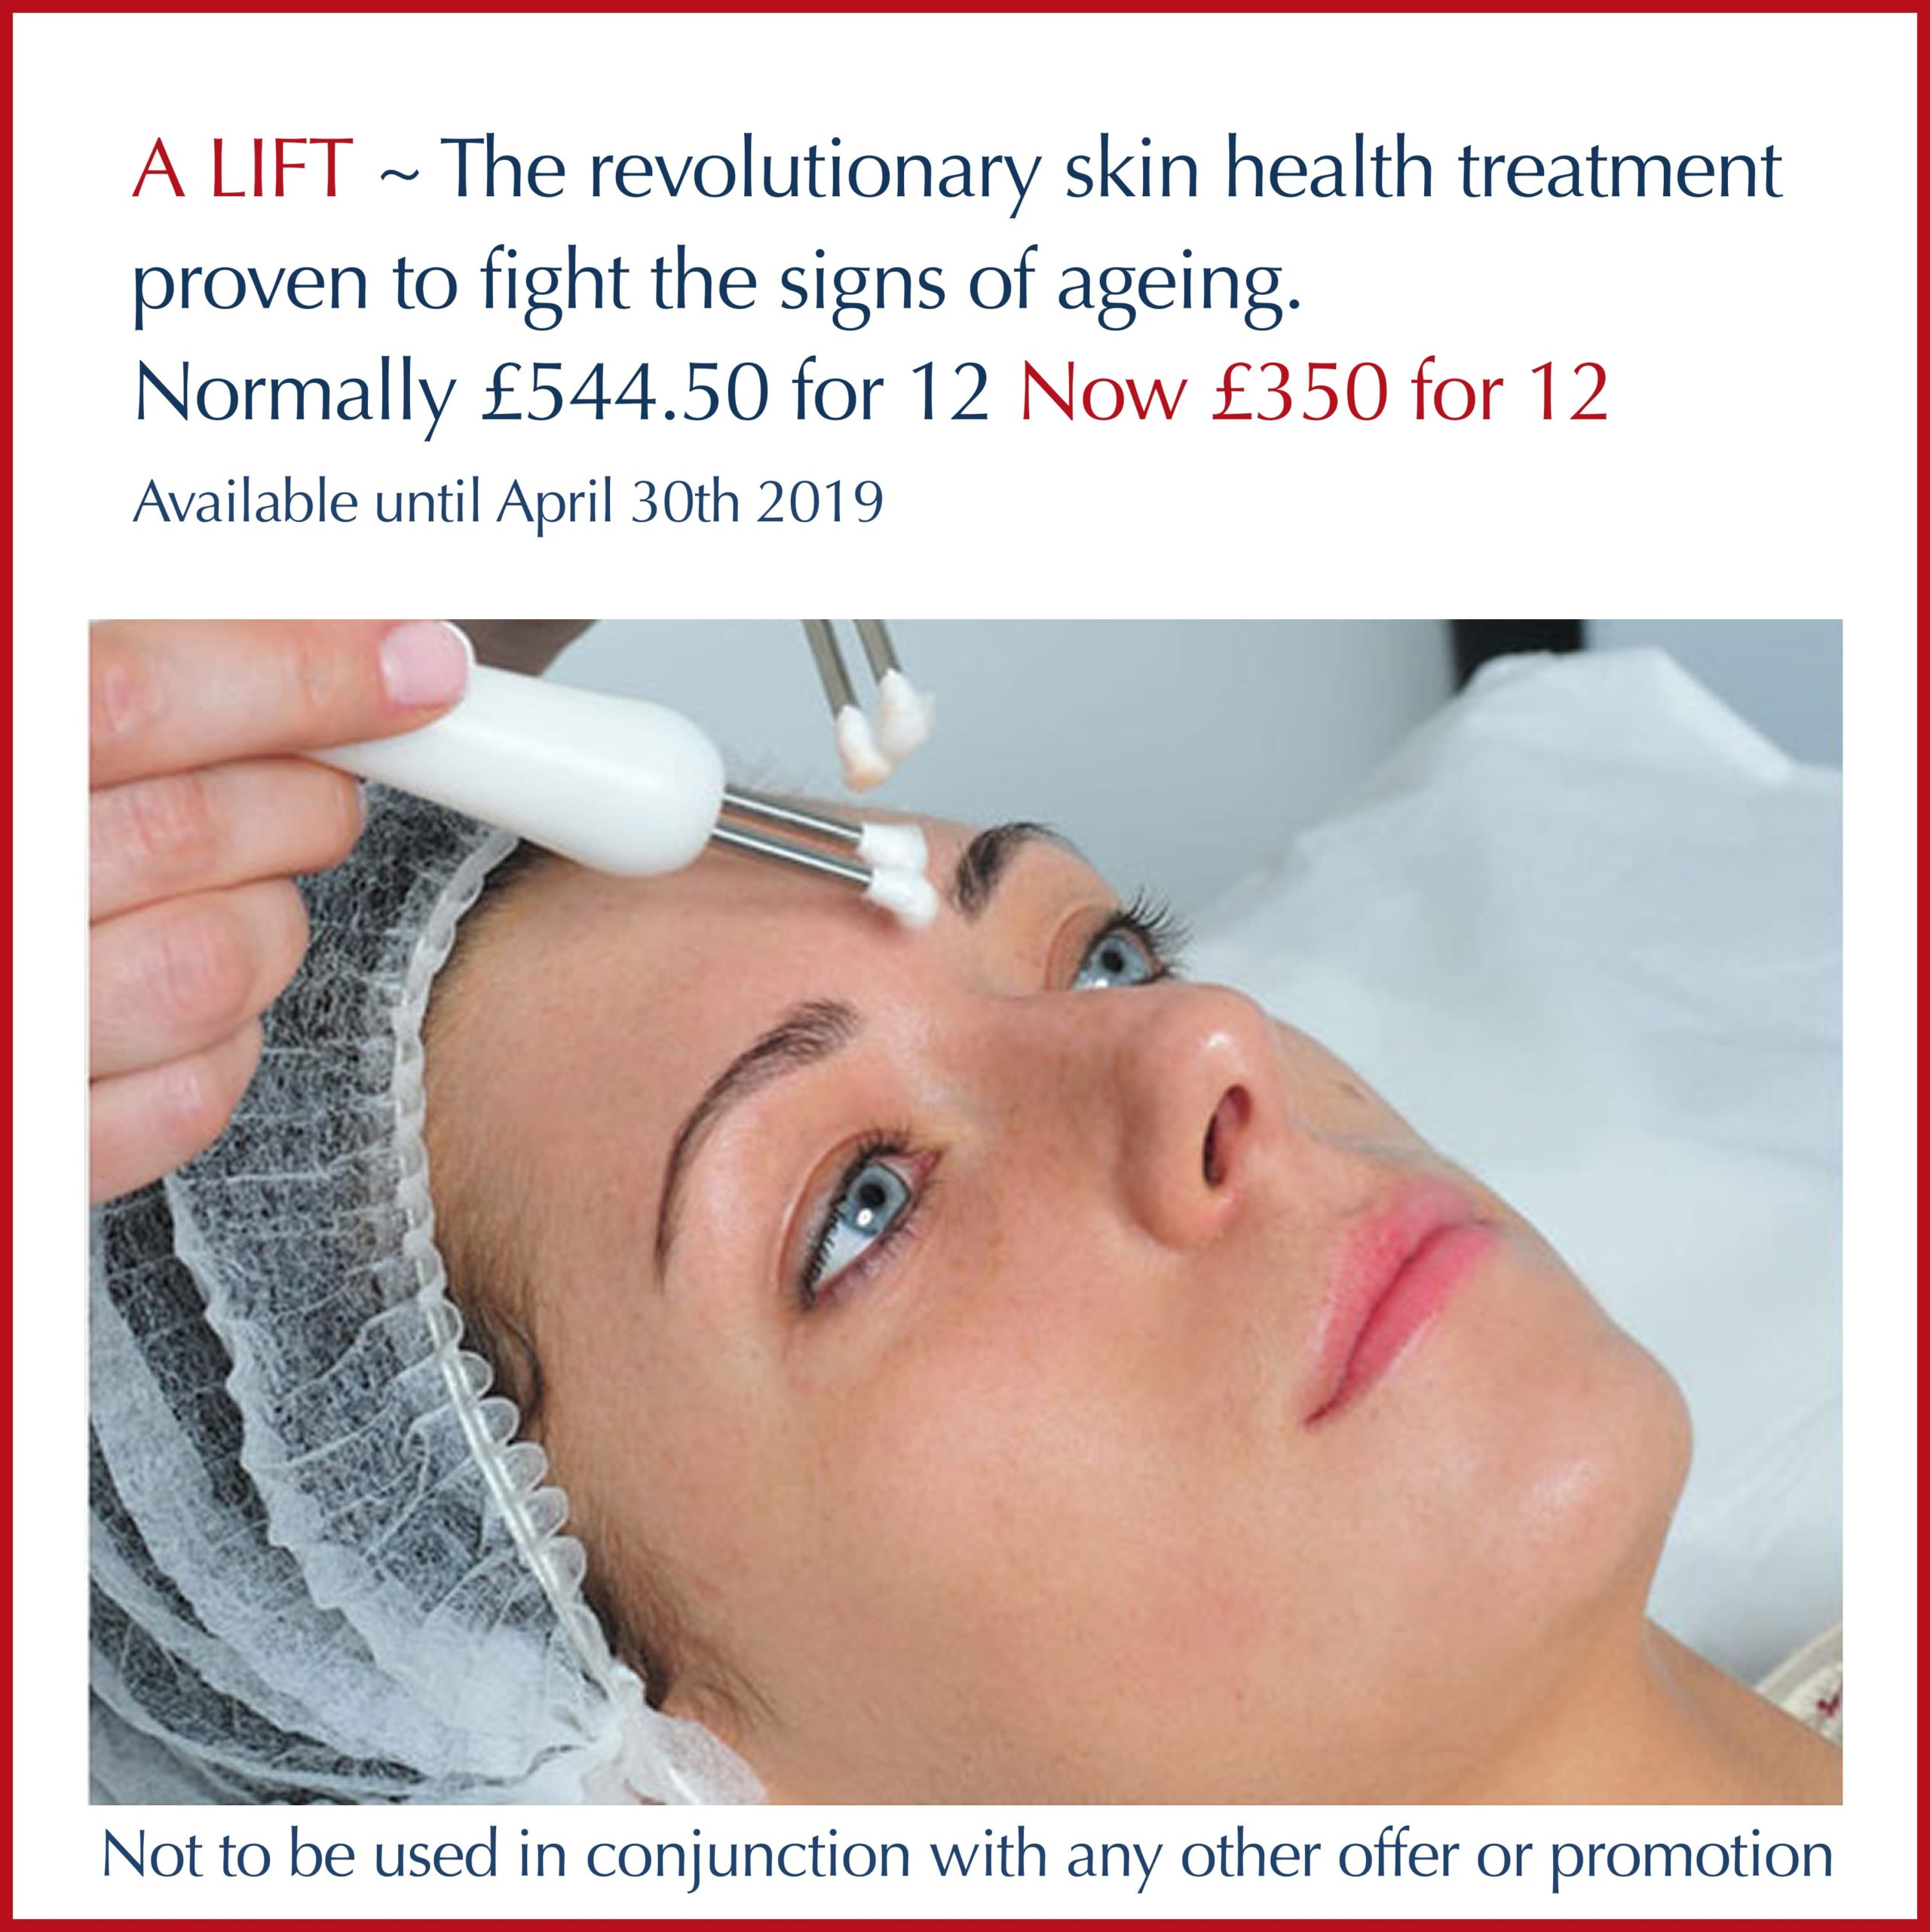 Lady on treatment bed having A Lift treatment on face